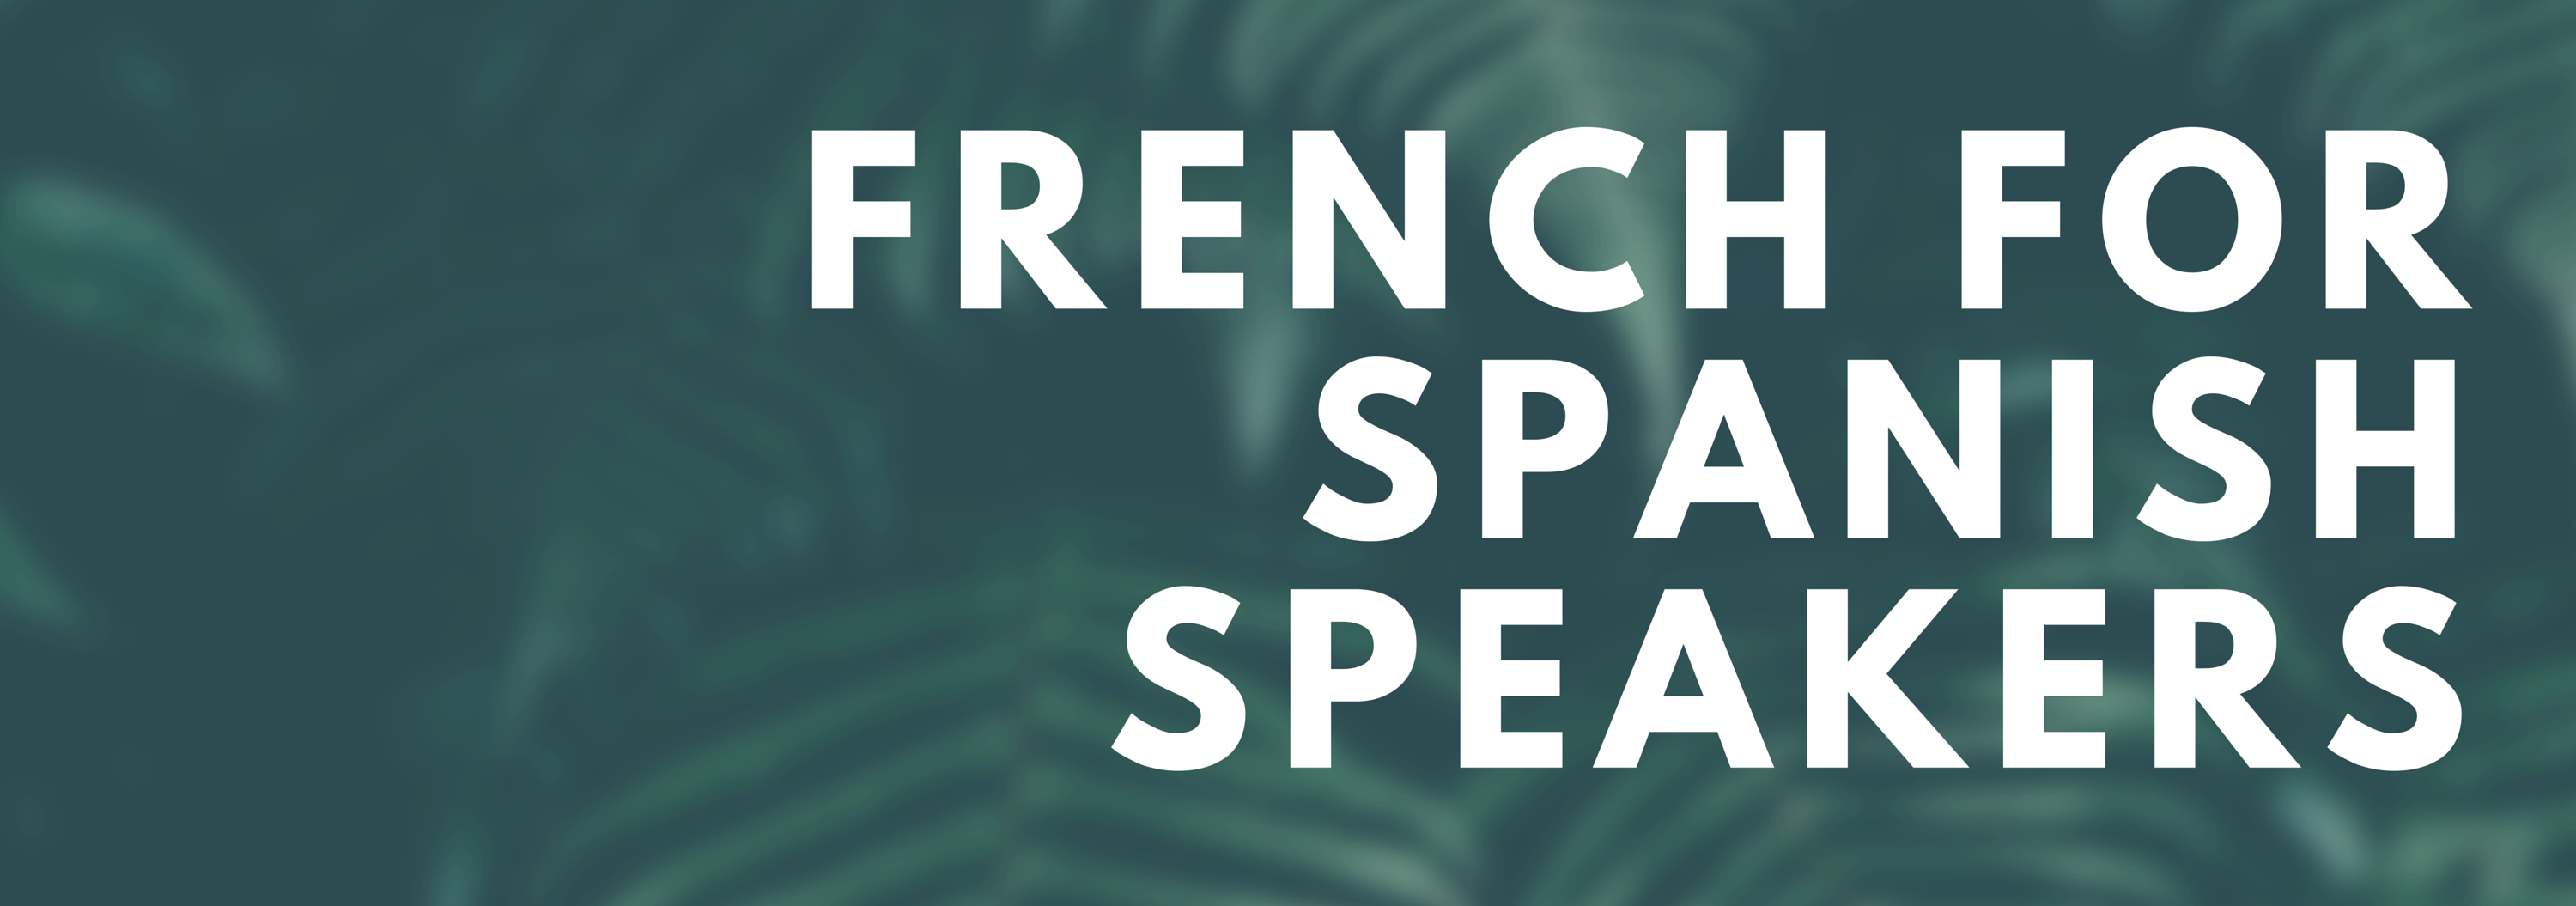 Is it possible to teach high school French or Spanish with a linguistics degree?